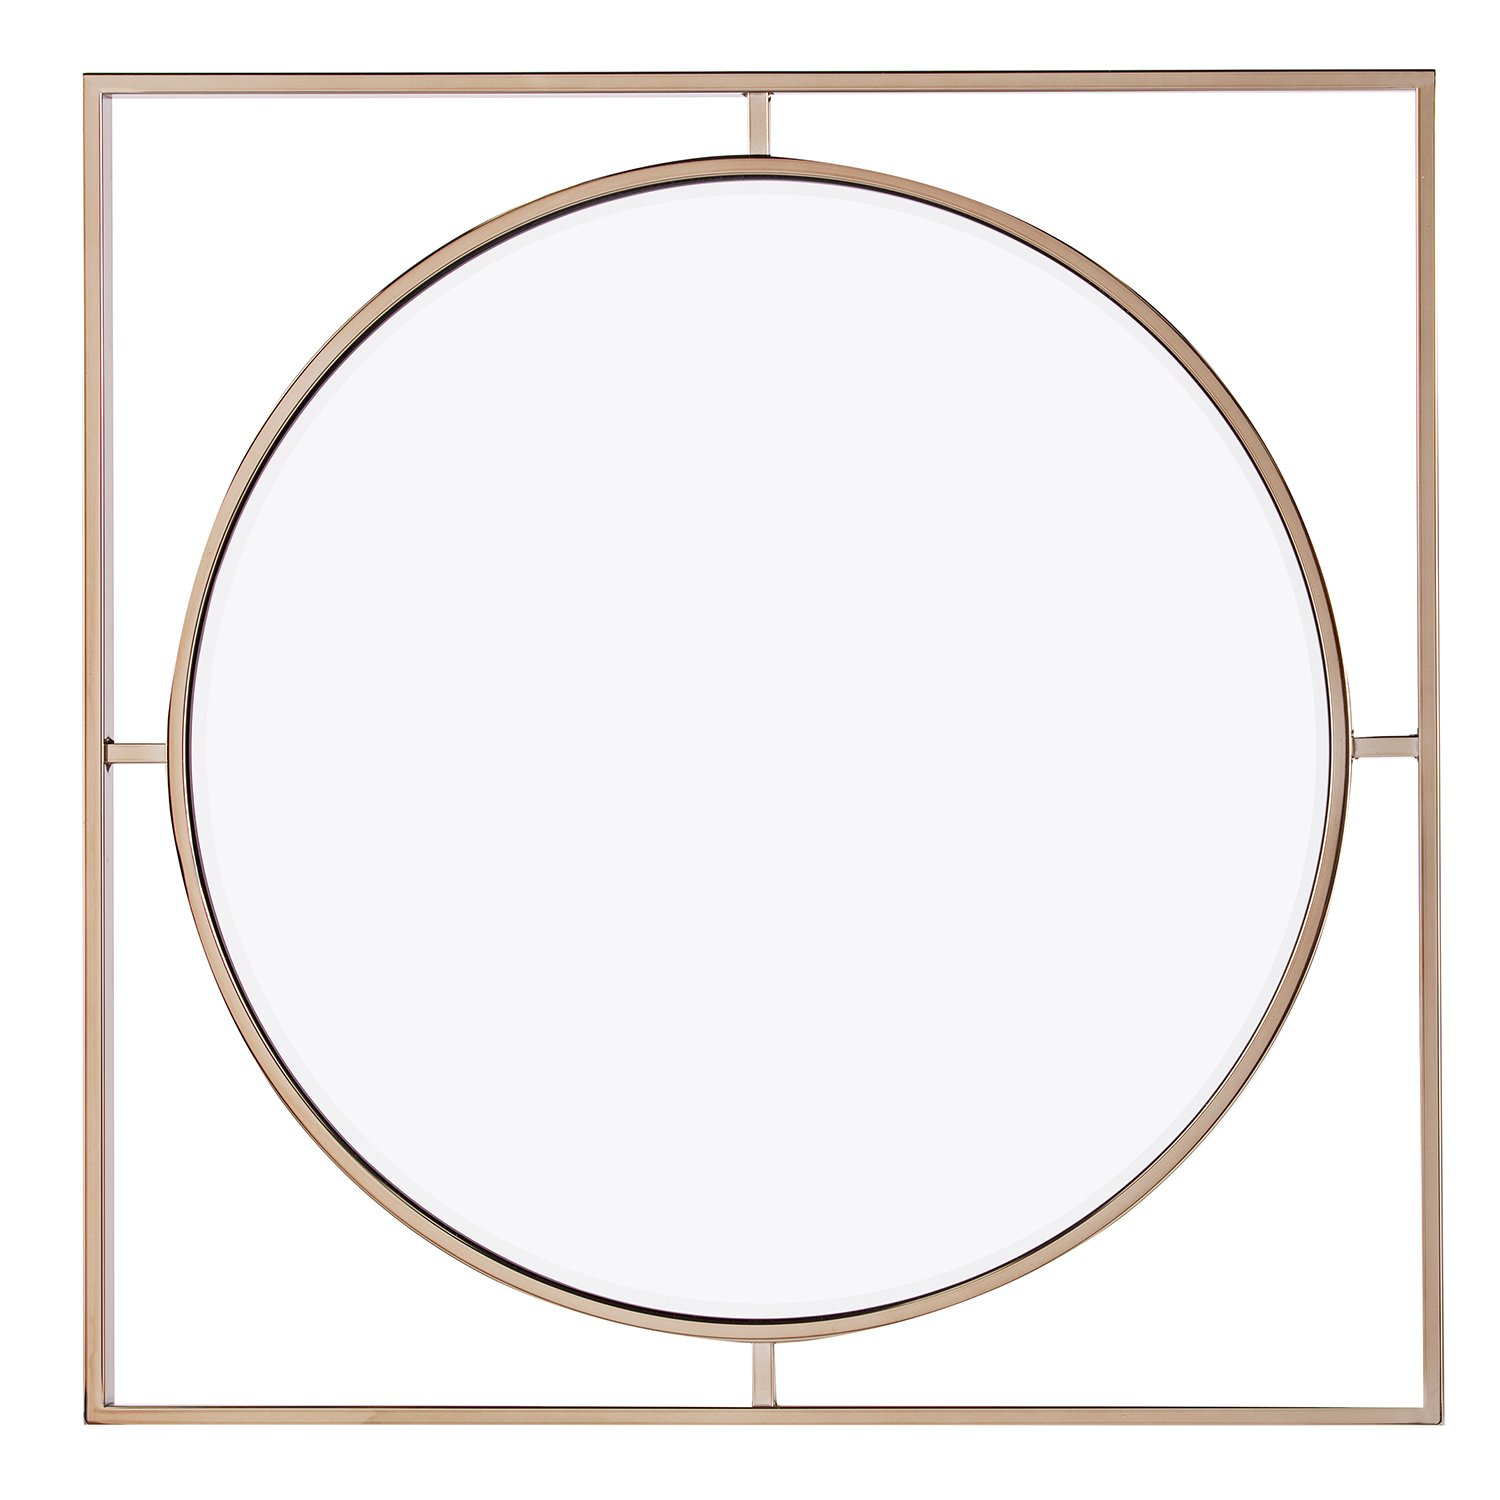 Furniture HotSpot Gold Round Wall Mirror – 32 W x 1.5 D x 32 H